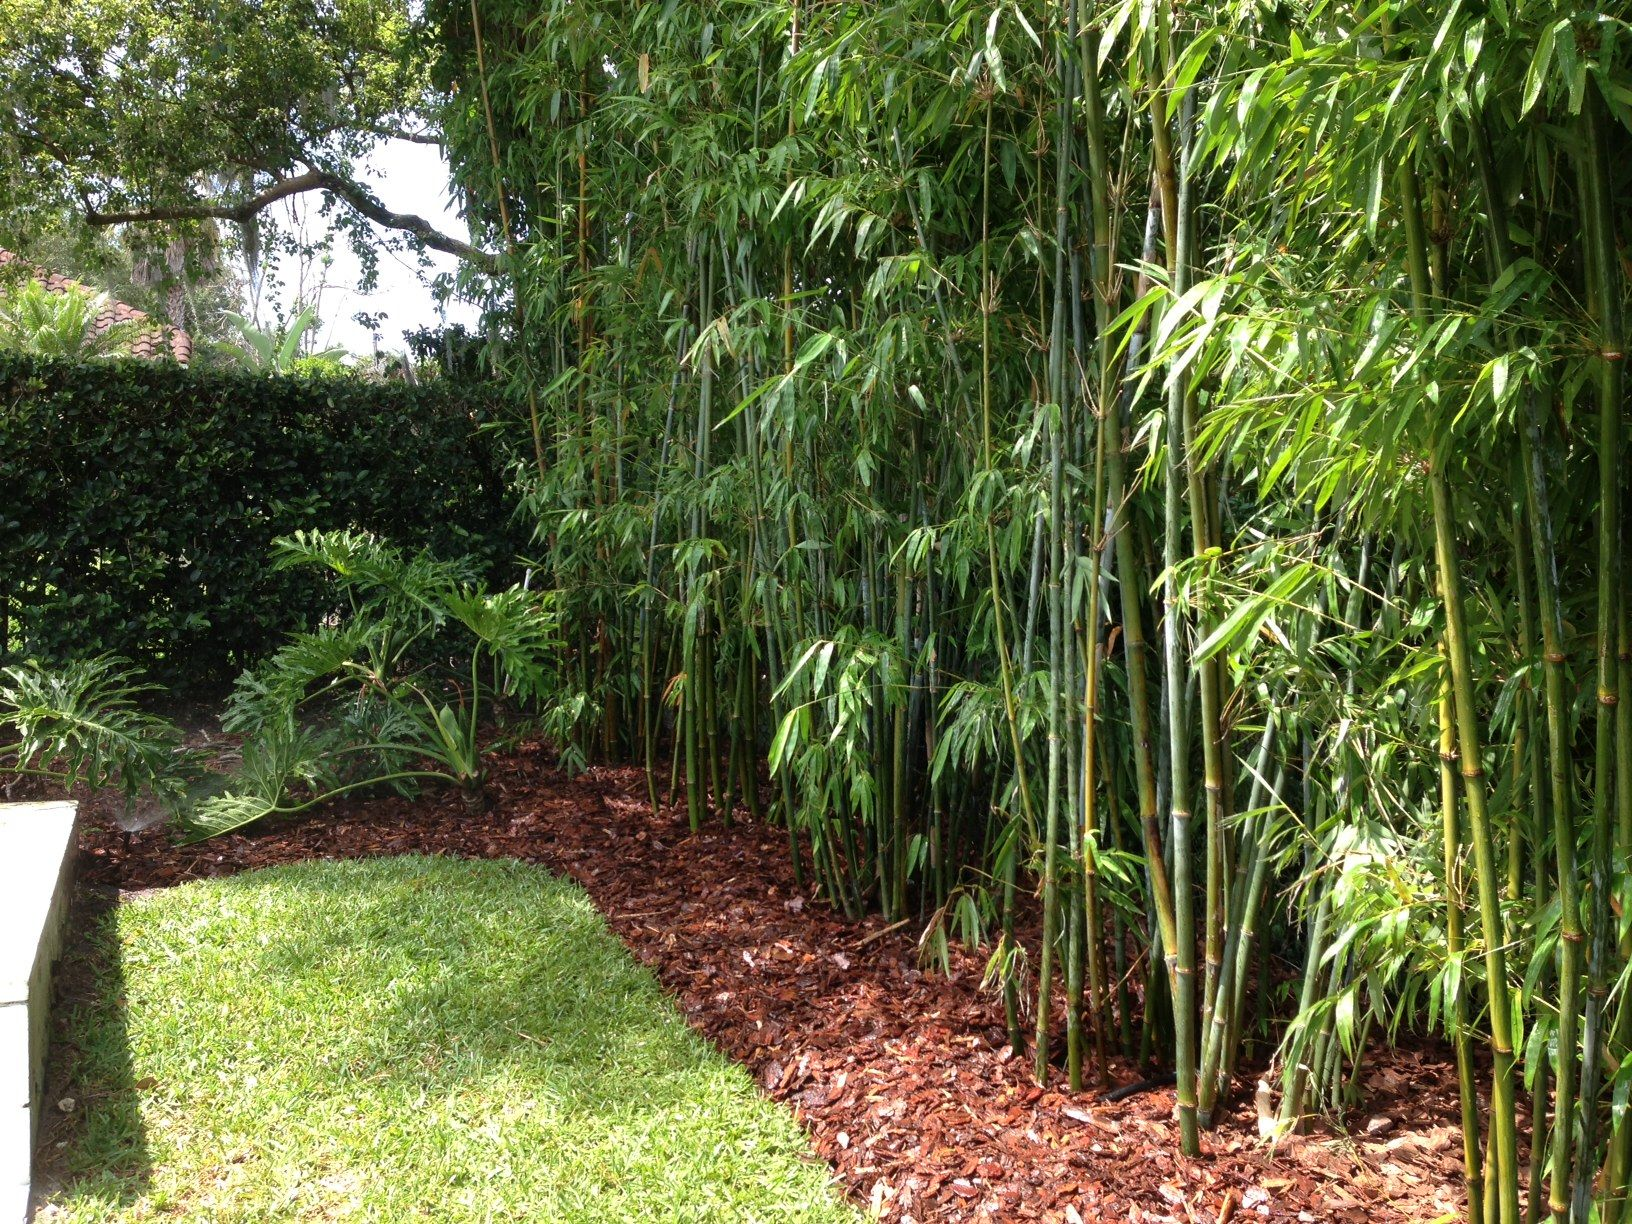 Landscape Design Bamboo Irrigation Design BLG Environmental